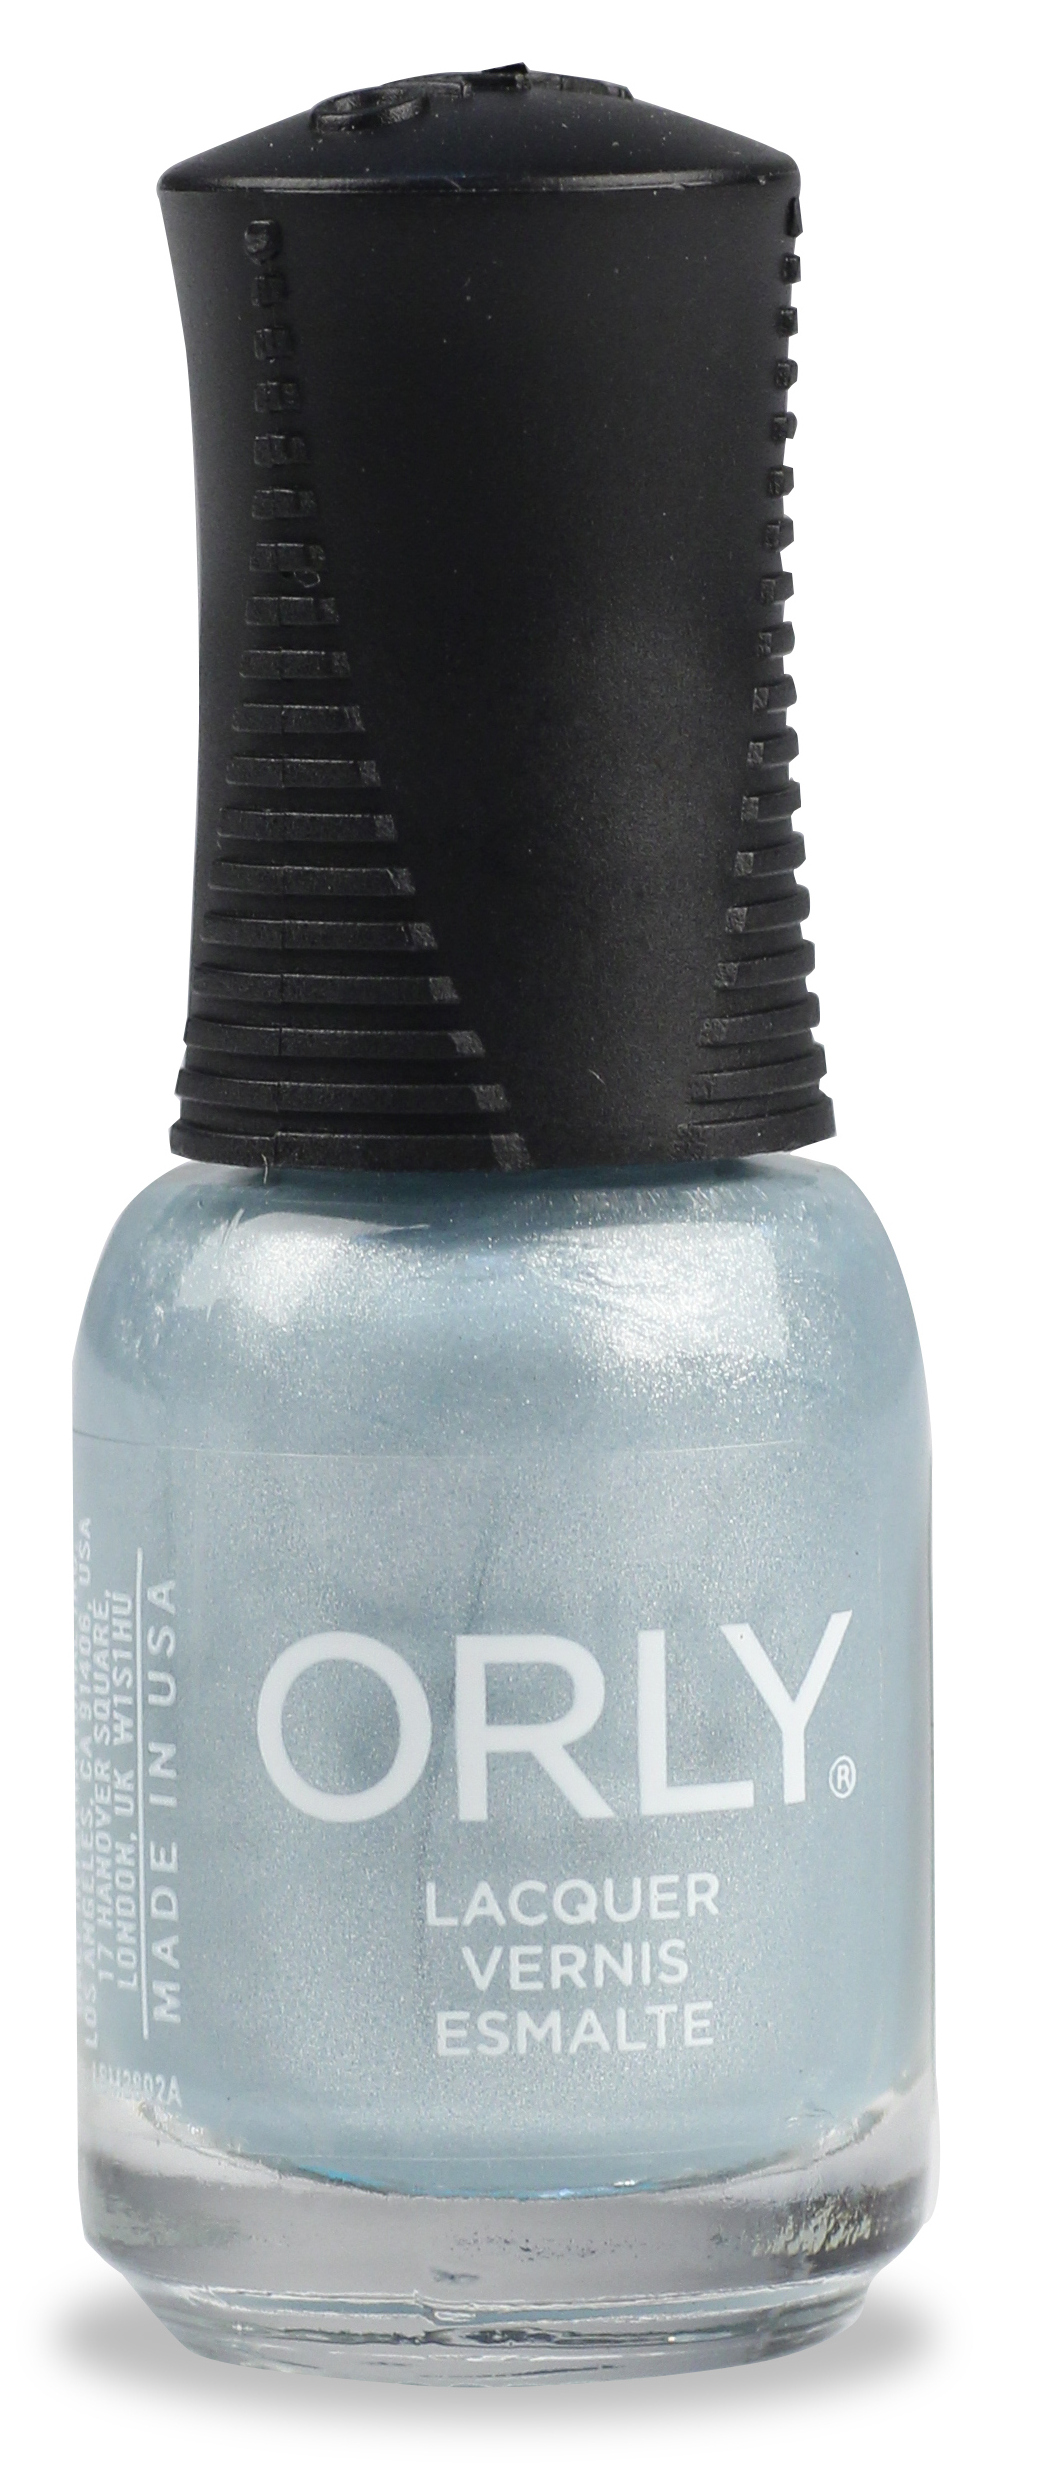 ORLY Лак для ногтей 946 ONCE IN A BLUE MOON / DARLINGS OF DEFIANCE HOLIDAY 5,3 мл